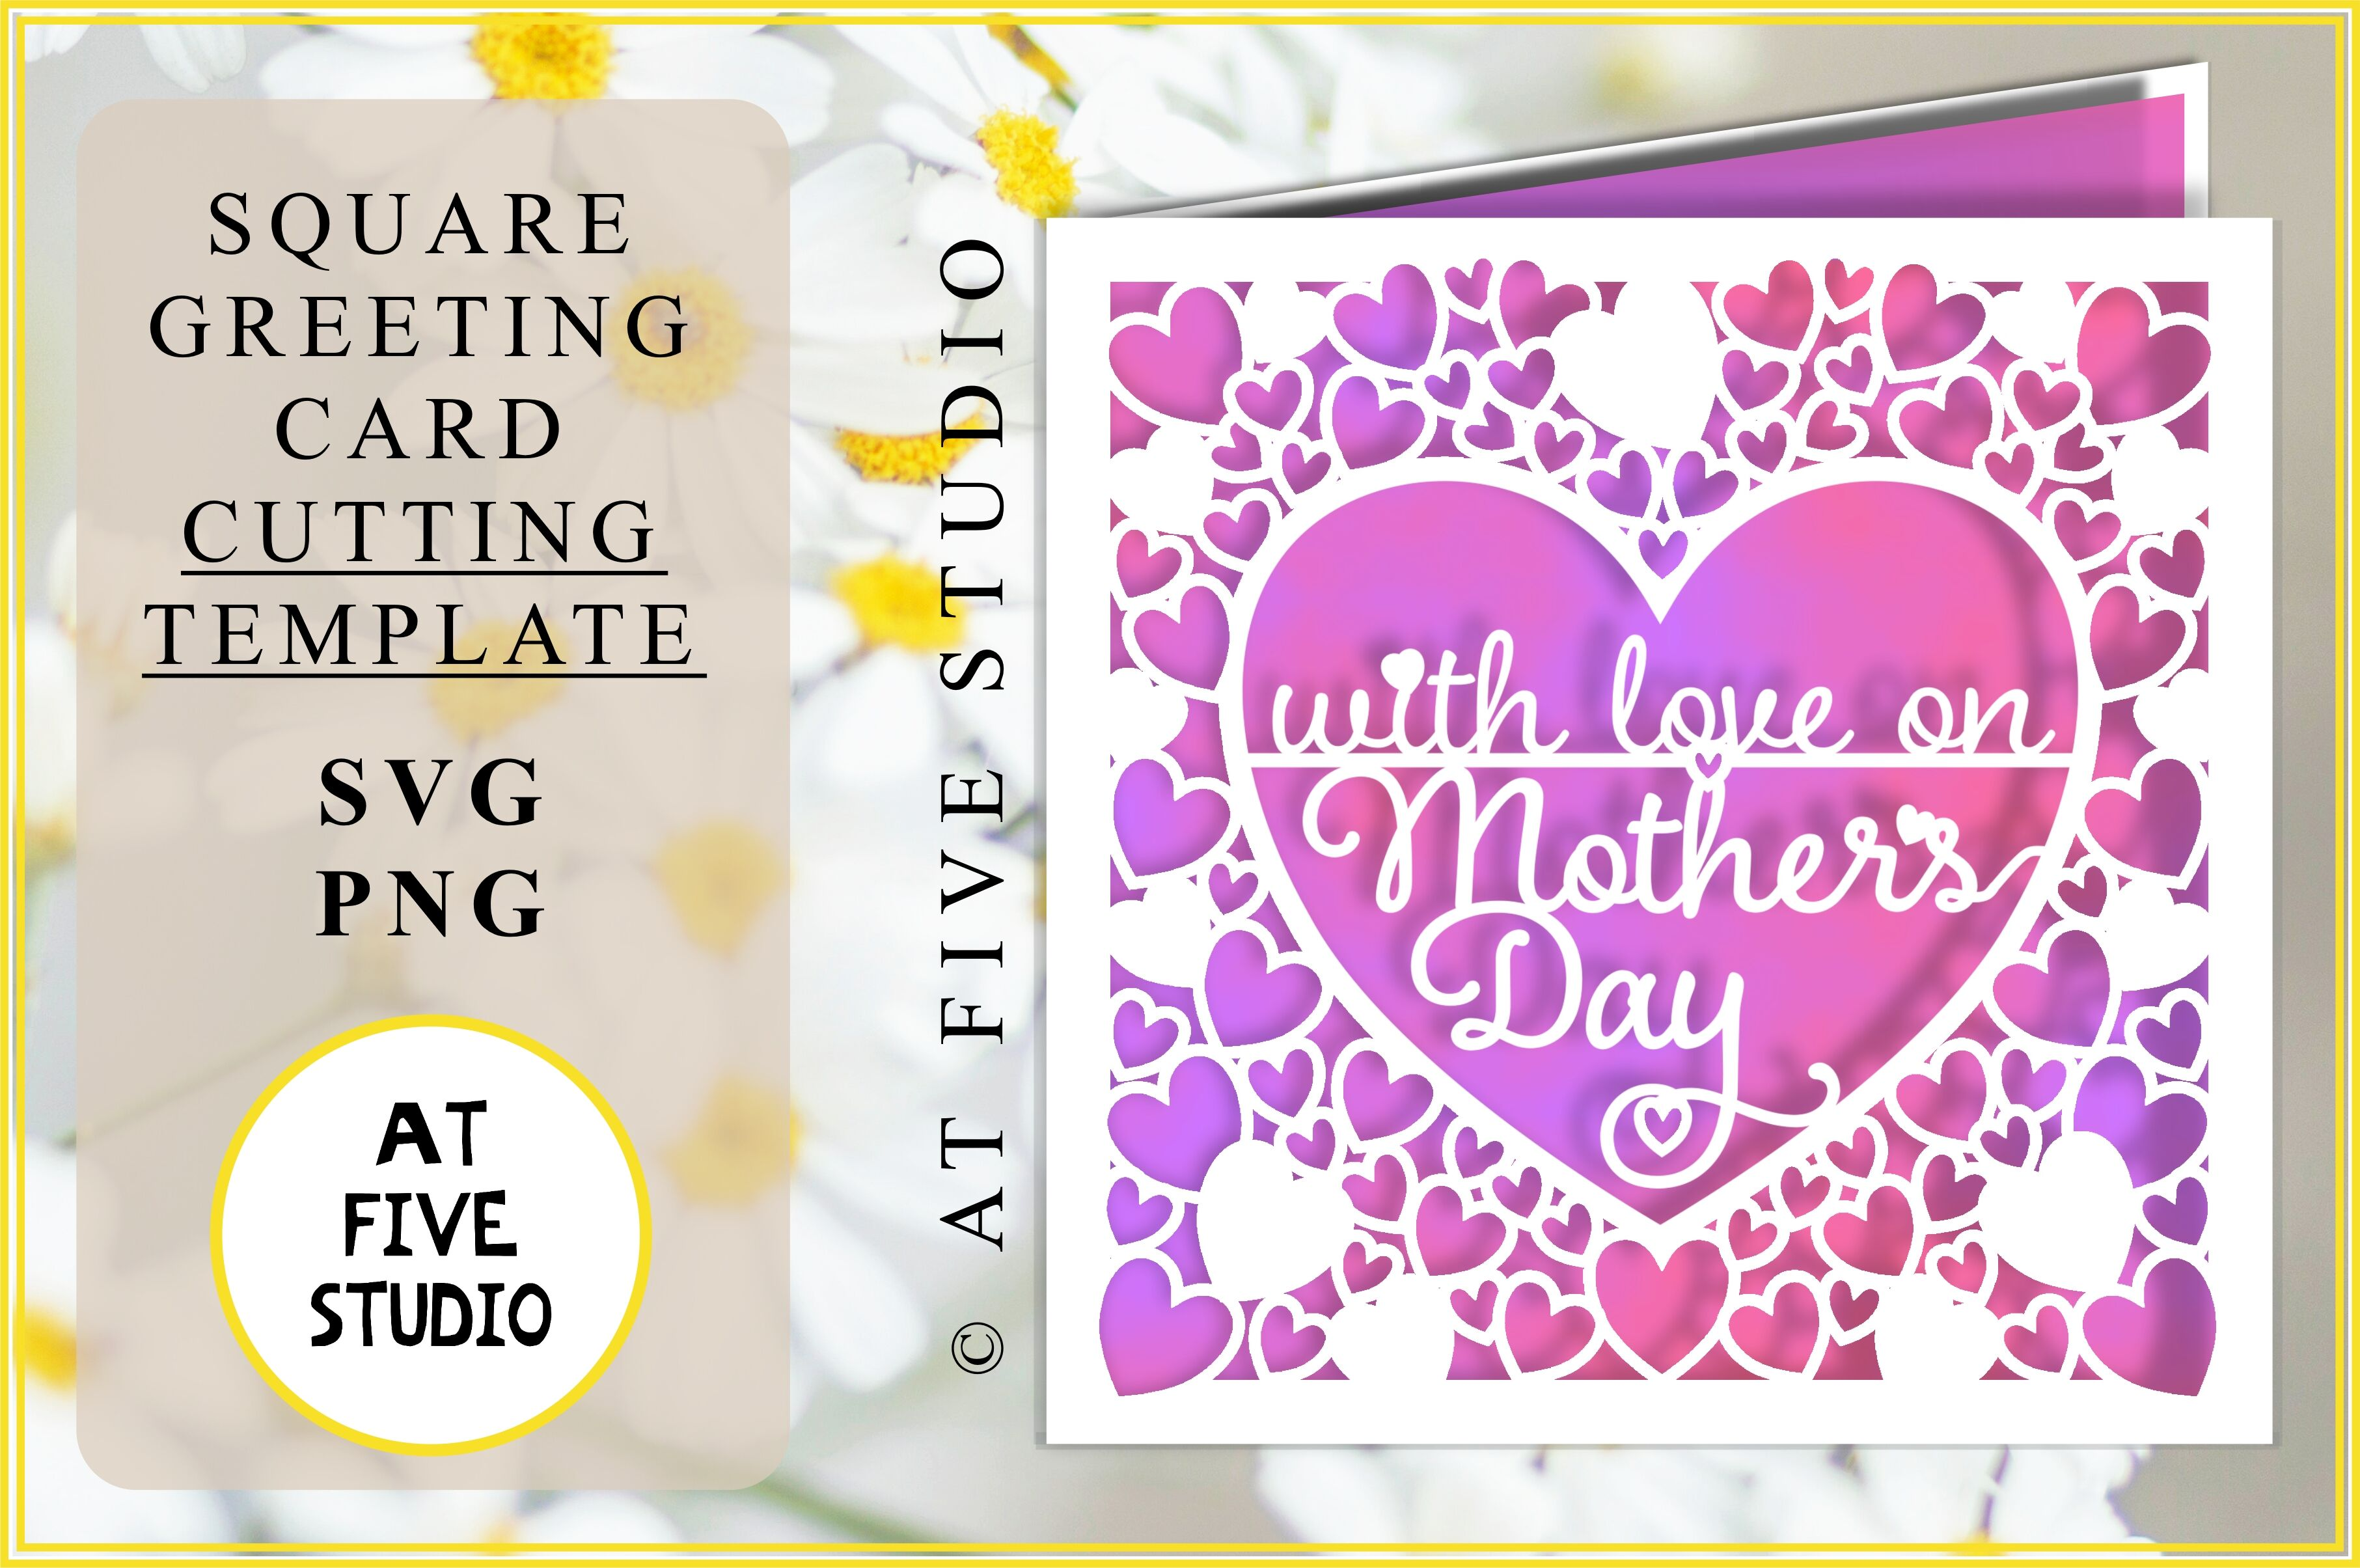 With Love On Mothers Day Svg Png Greetings Card Papercutting